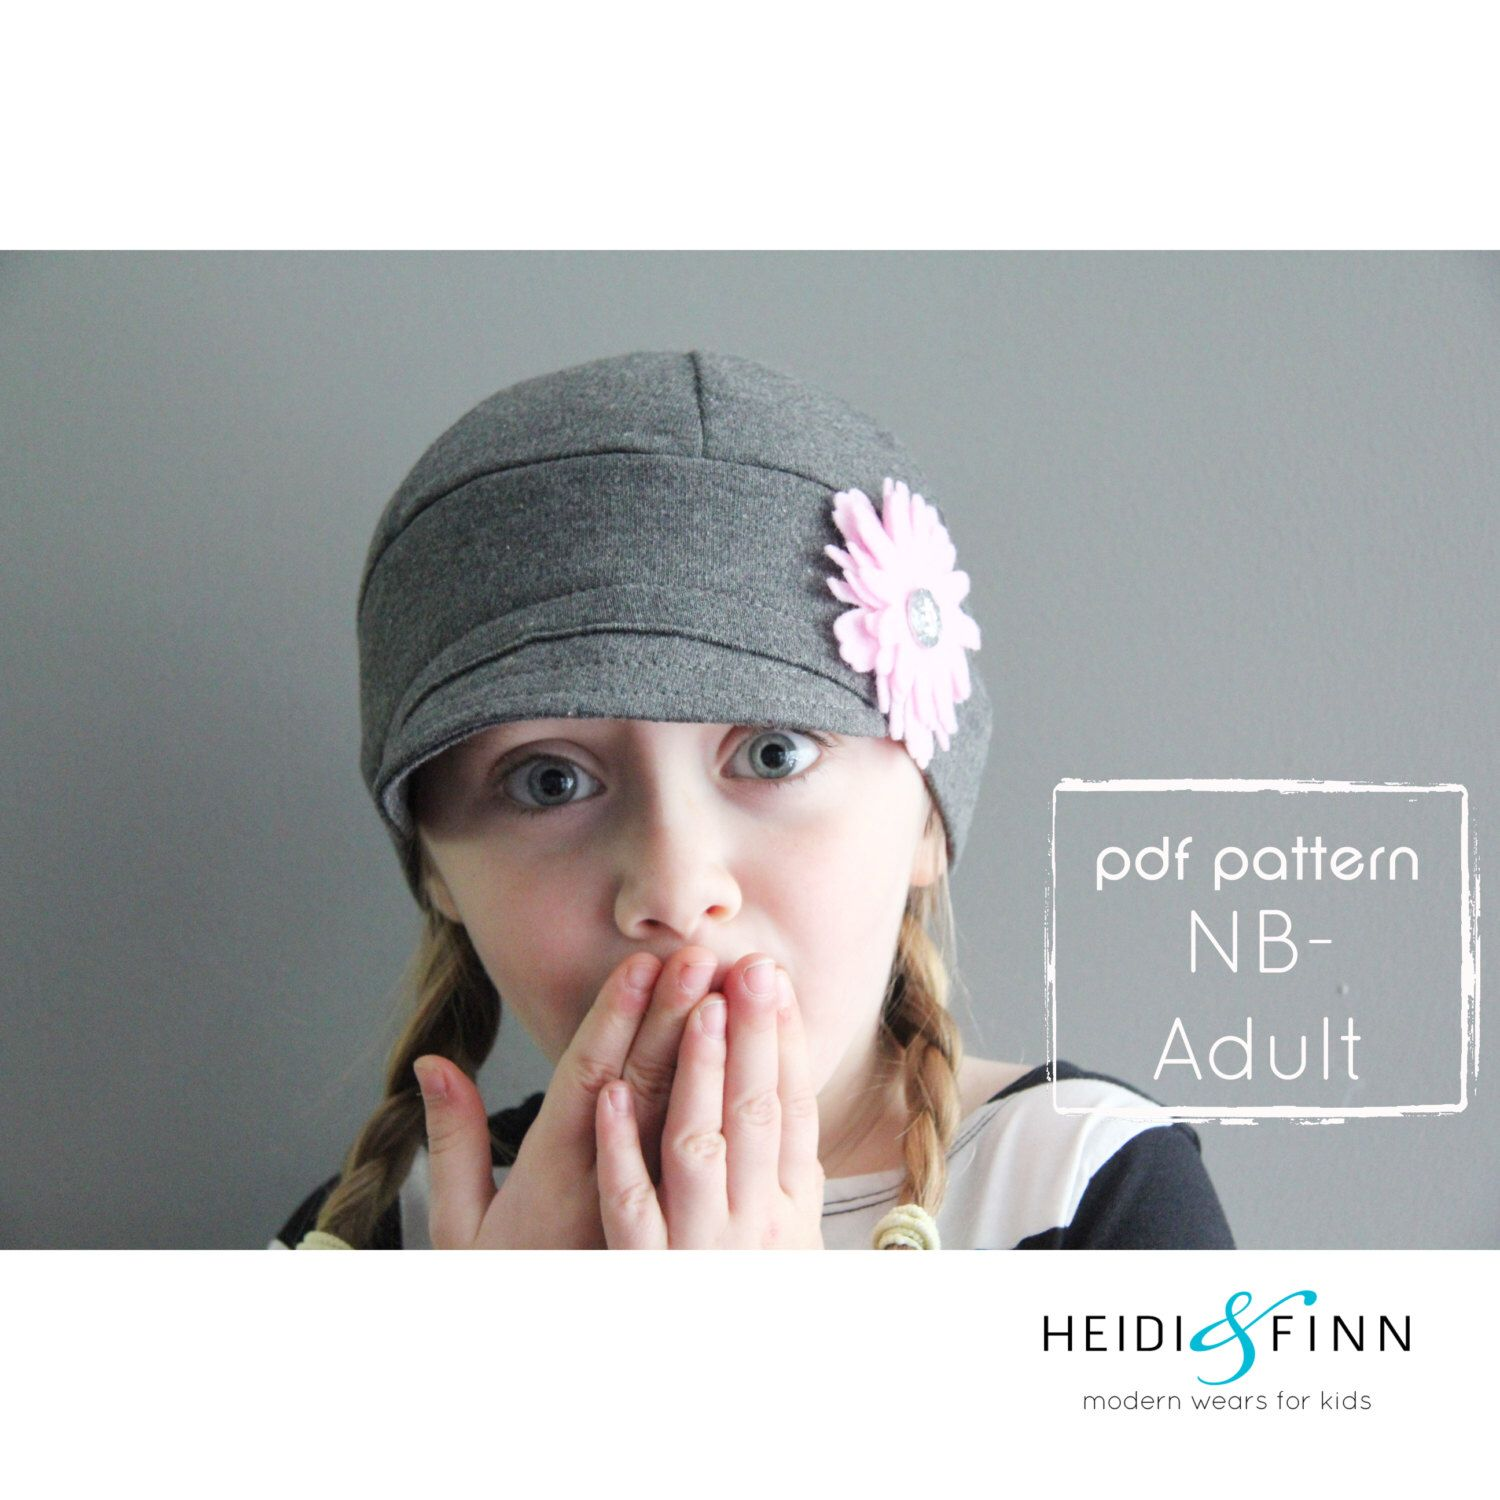 NEW SALE Downtown Hat pattern and tutorial 3m-12y easy sew PDF pattern unisex cap by heidiandfinn on Etsy https://www.etsy.com/listing/152522050/new-sale-downtown-hat-pattern-and